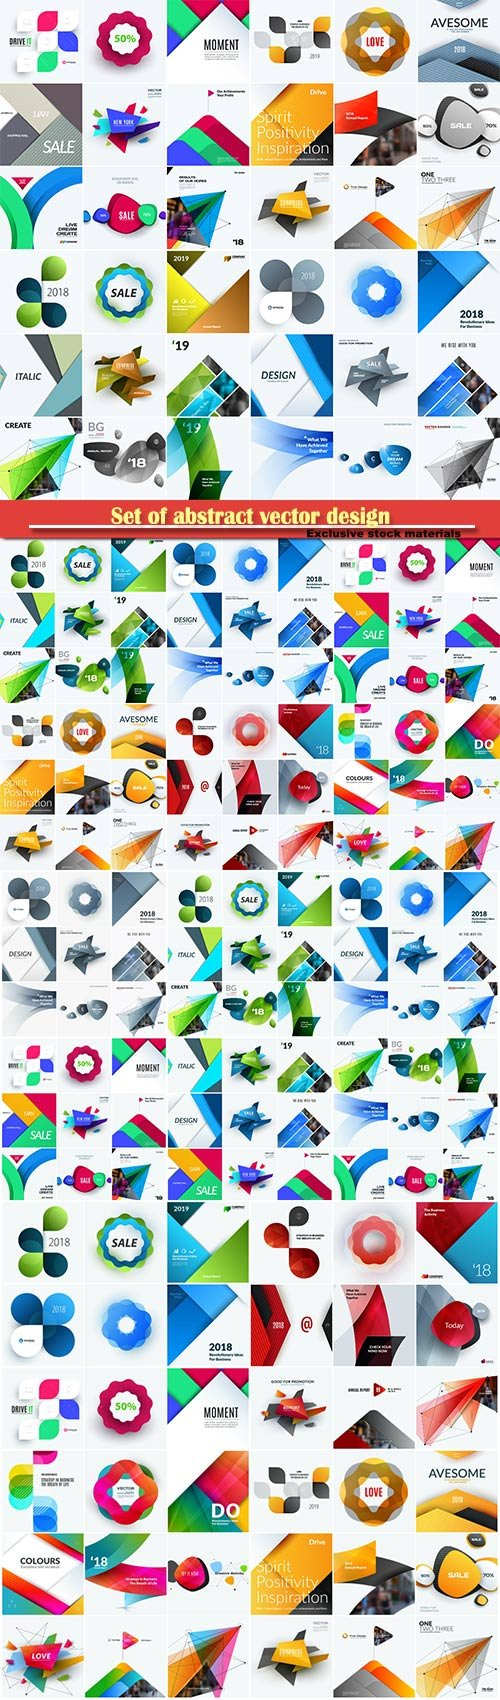 Set of abstract vector design for graphic template